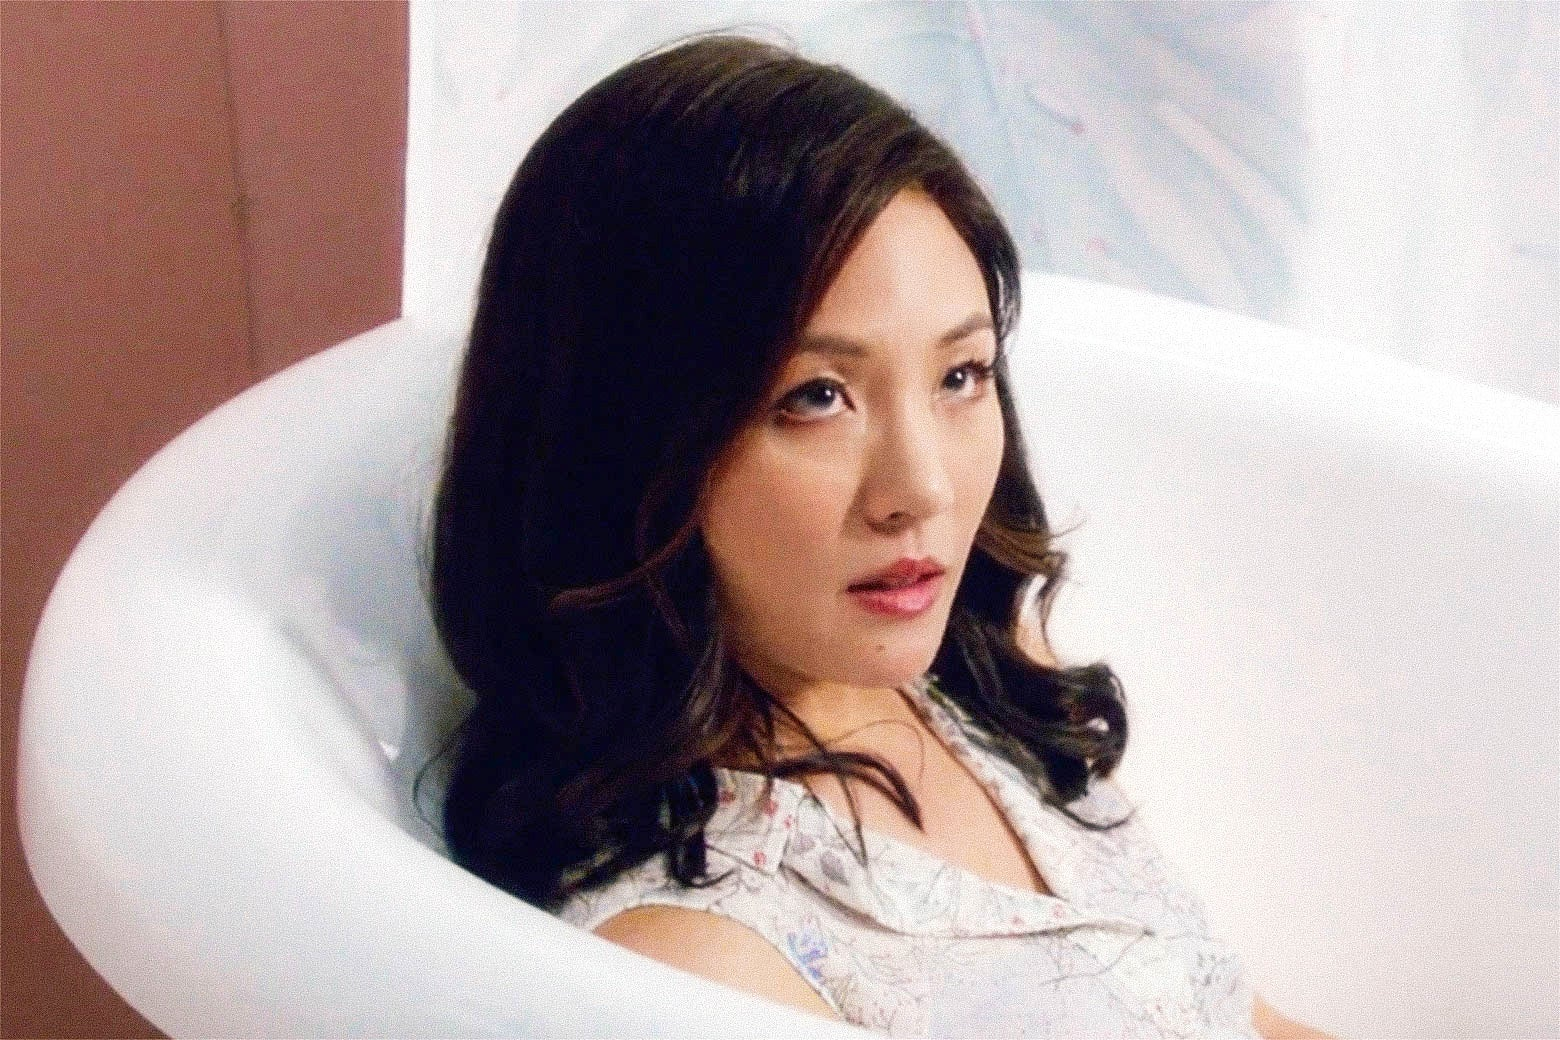 Constance Wu's character in a bathtub on the show.